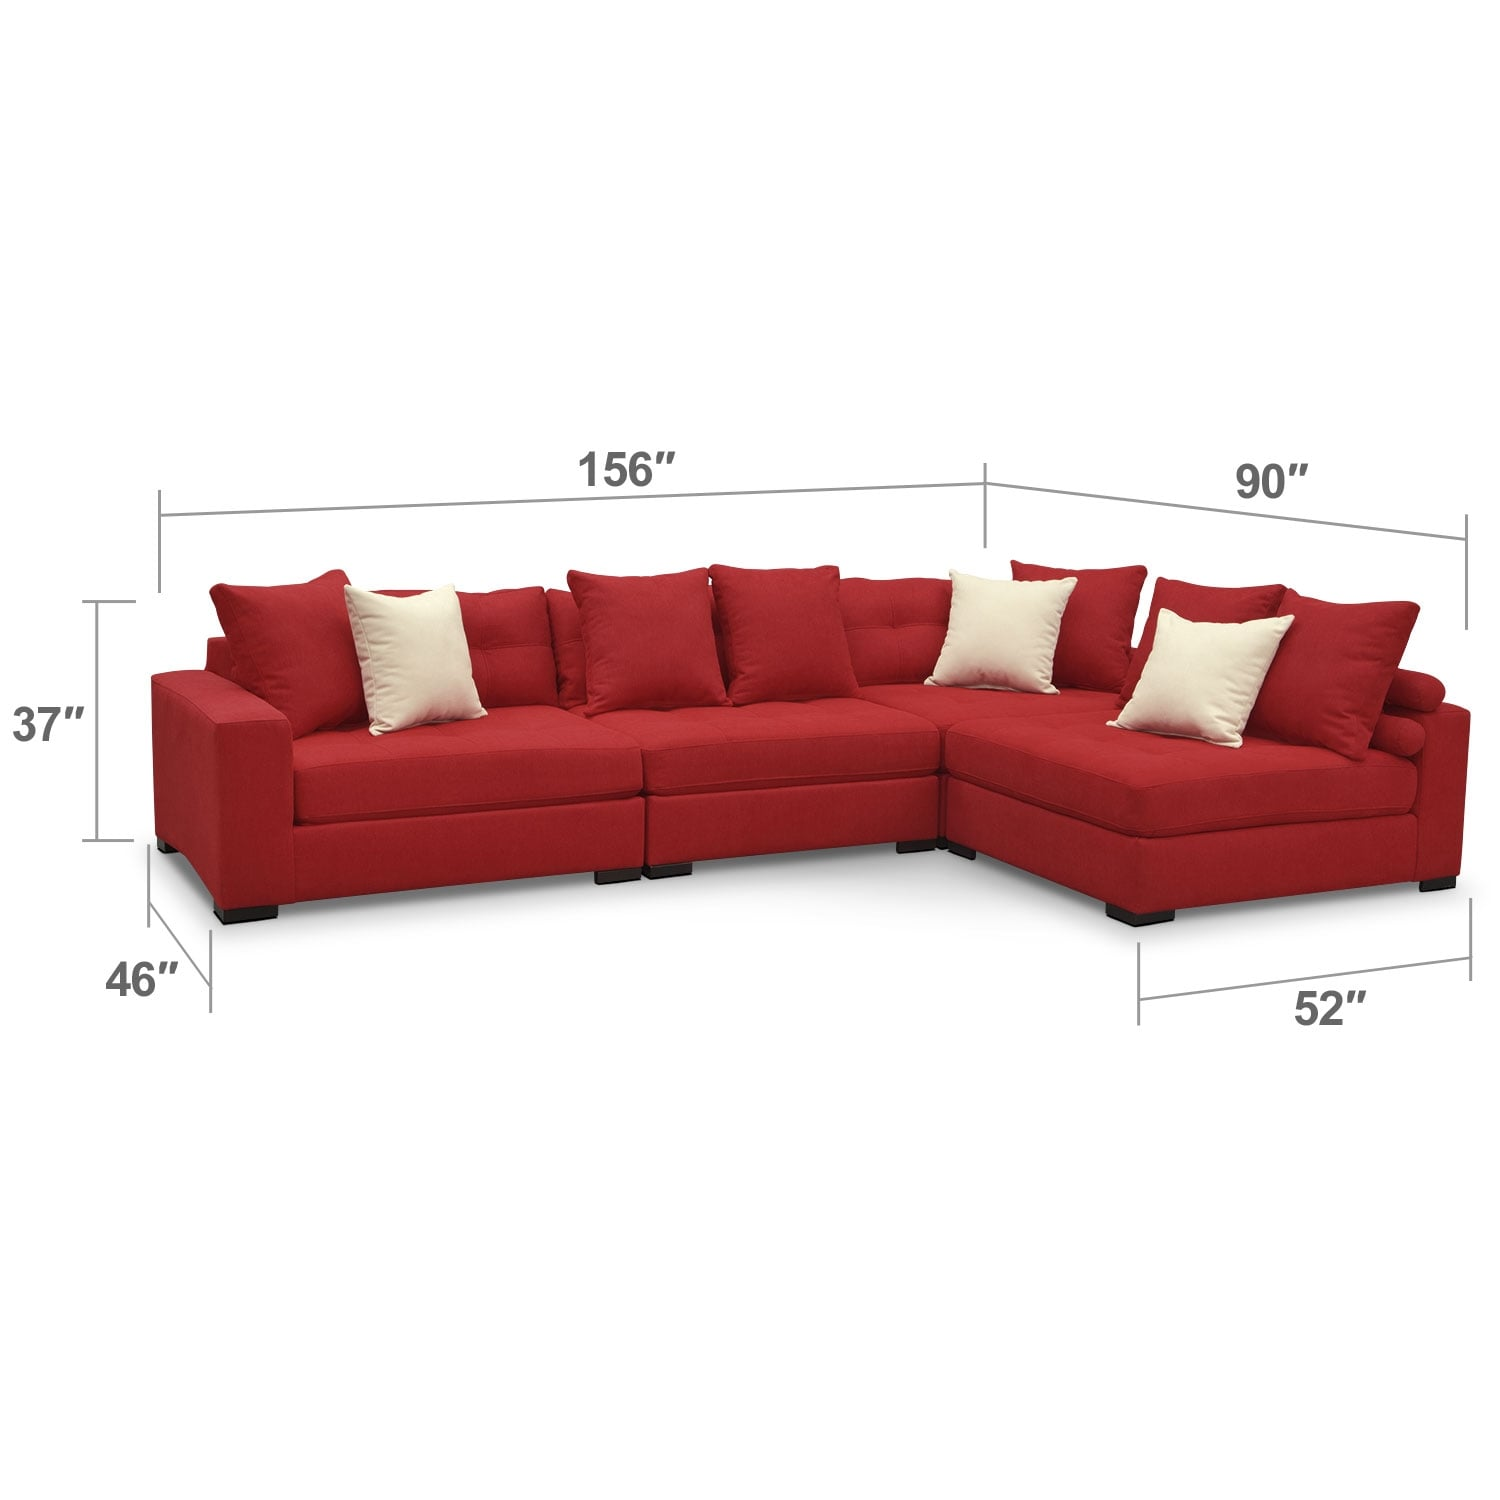 Living Room Furniture - Venti Red 4 Pc. Sectional